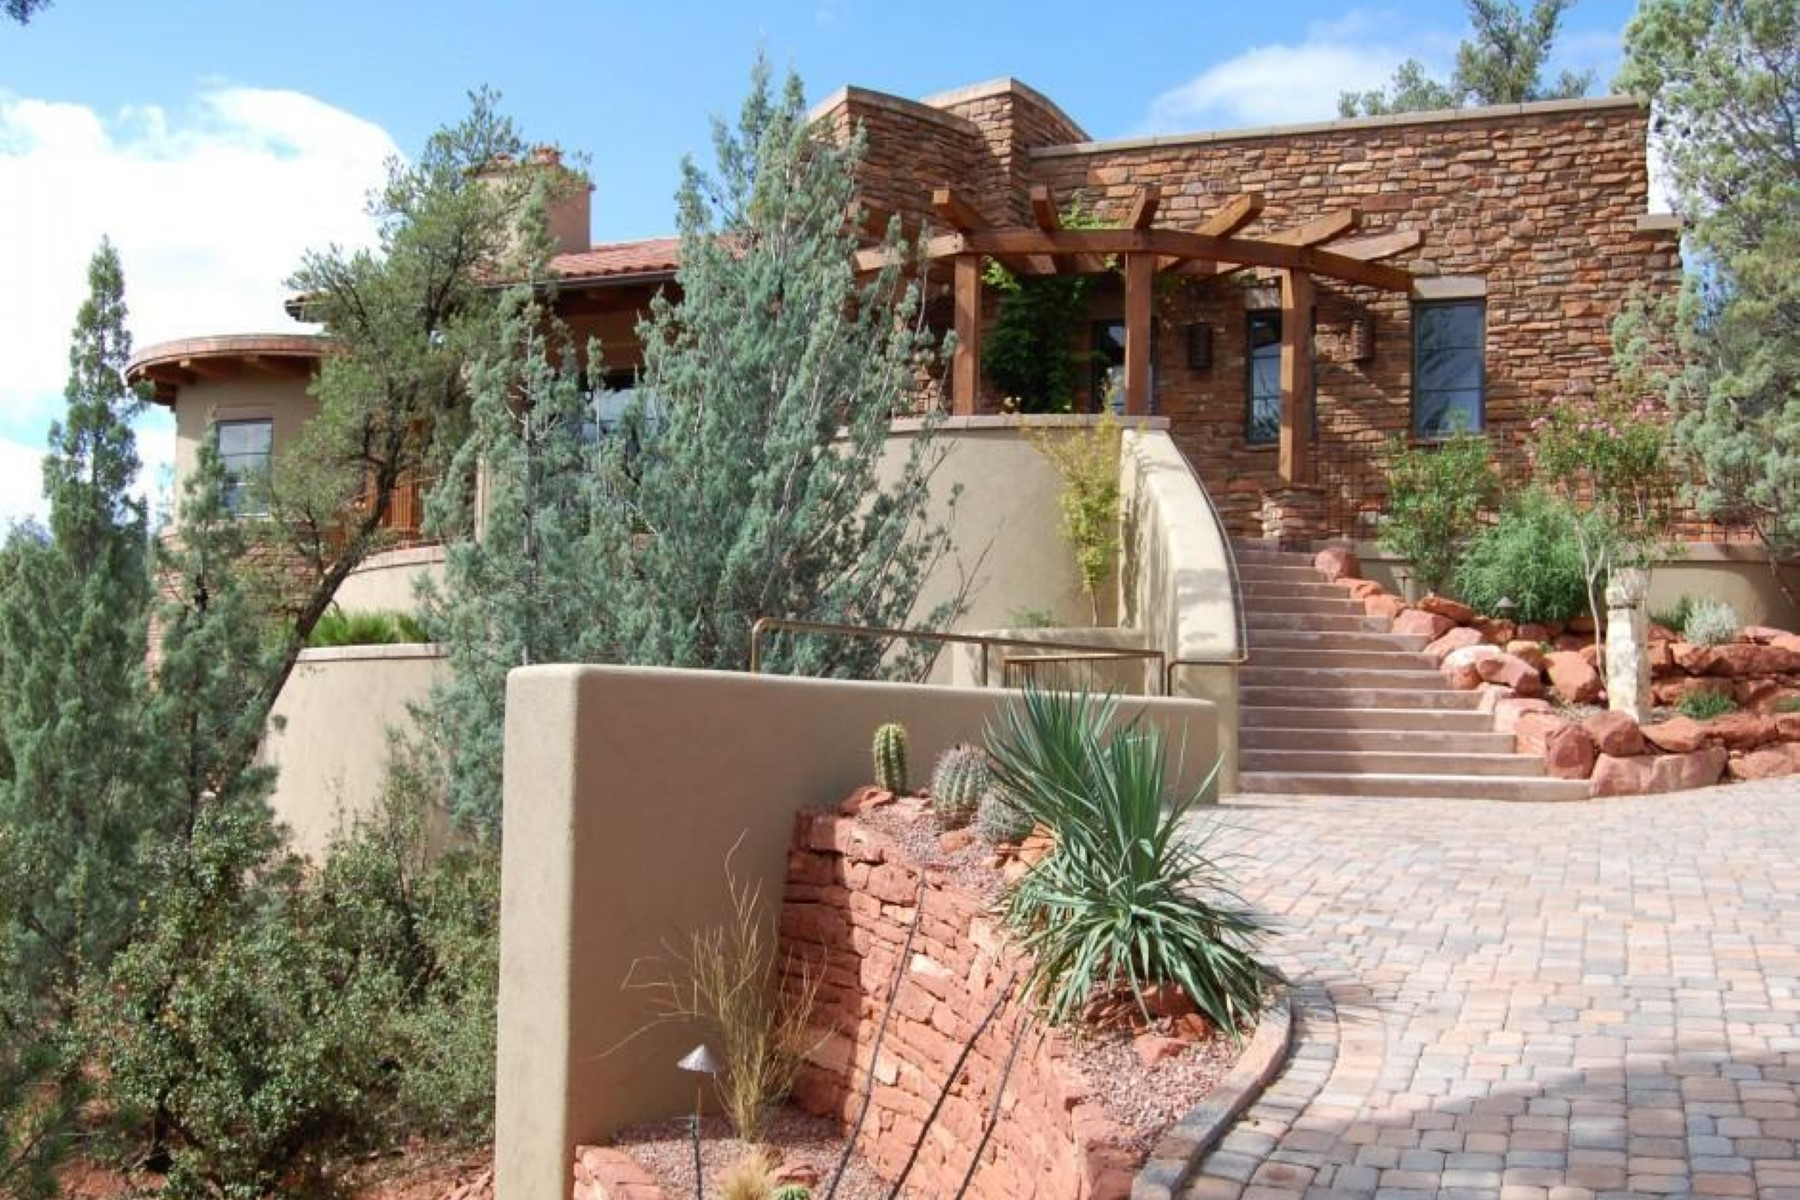 Casa Unifamiliar por un Venta en Custom Southwest Masterpiece 400 Little Scout Rd Sedona, Arizona, 86336 Estados Unidos